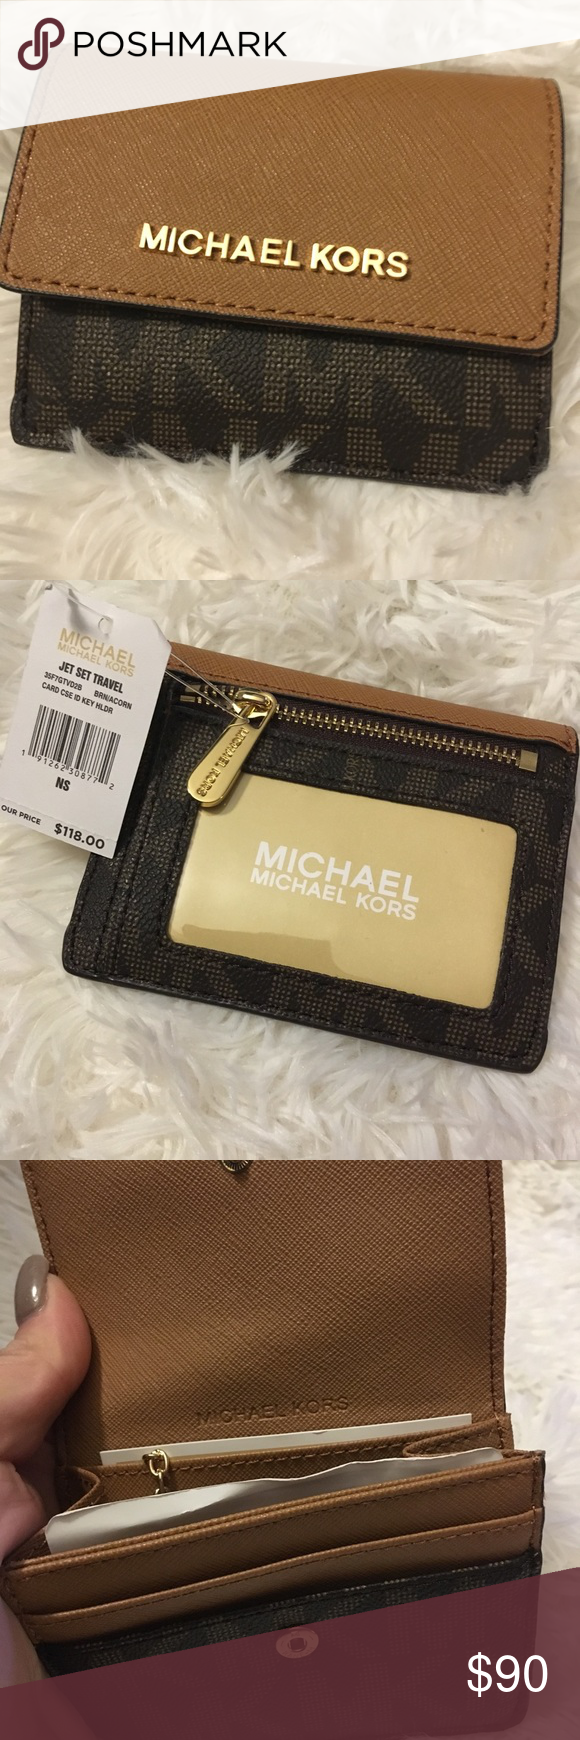 73b1a1022c1ec3 New Michael Kors jet set wallet coin purse New Michael Kors jet set wallet  coin purse card case ID holder Retail $118 Gold hardware with acorn color Mk  ...